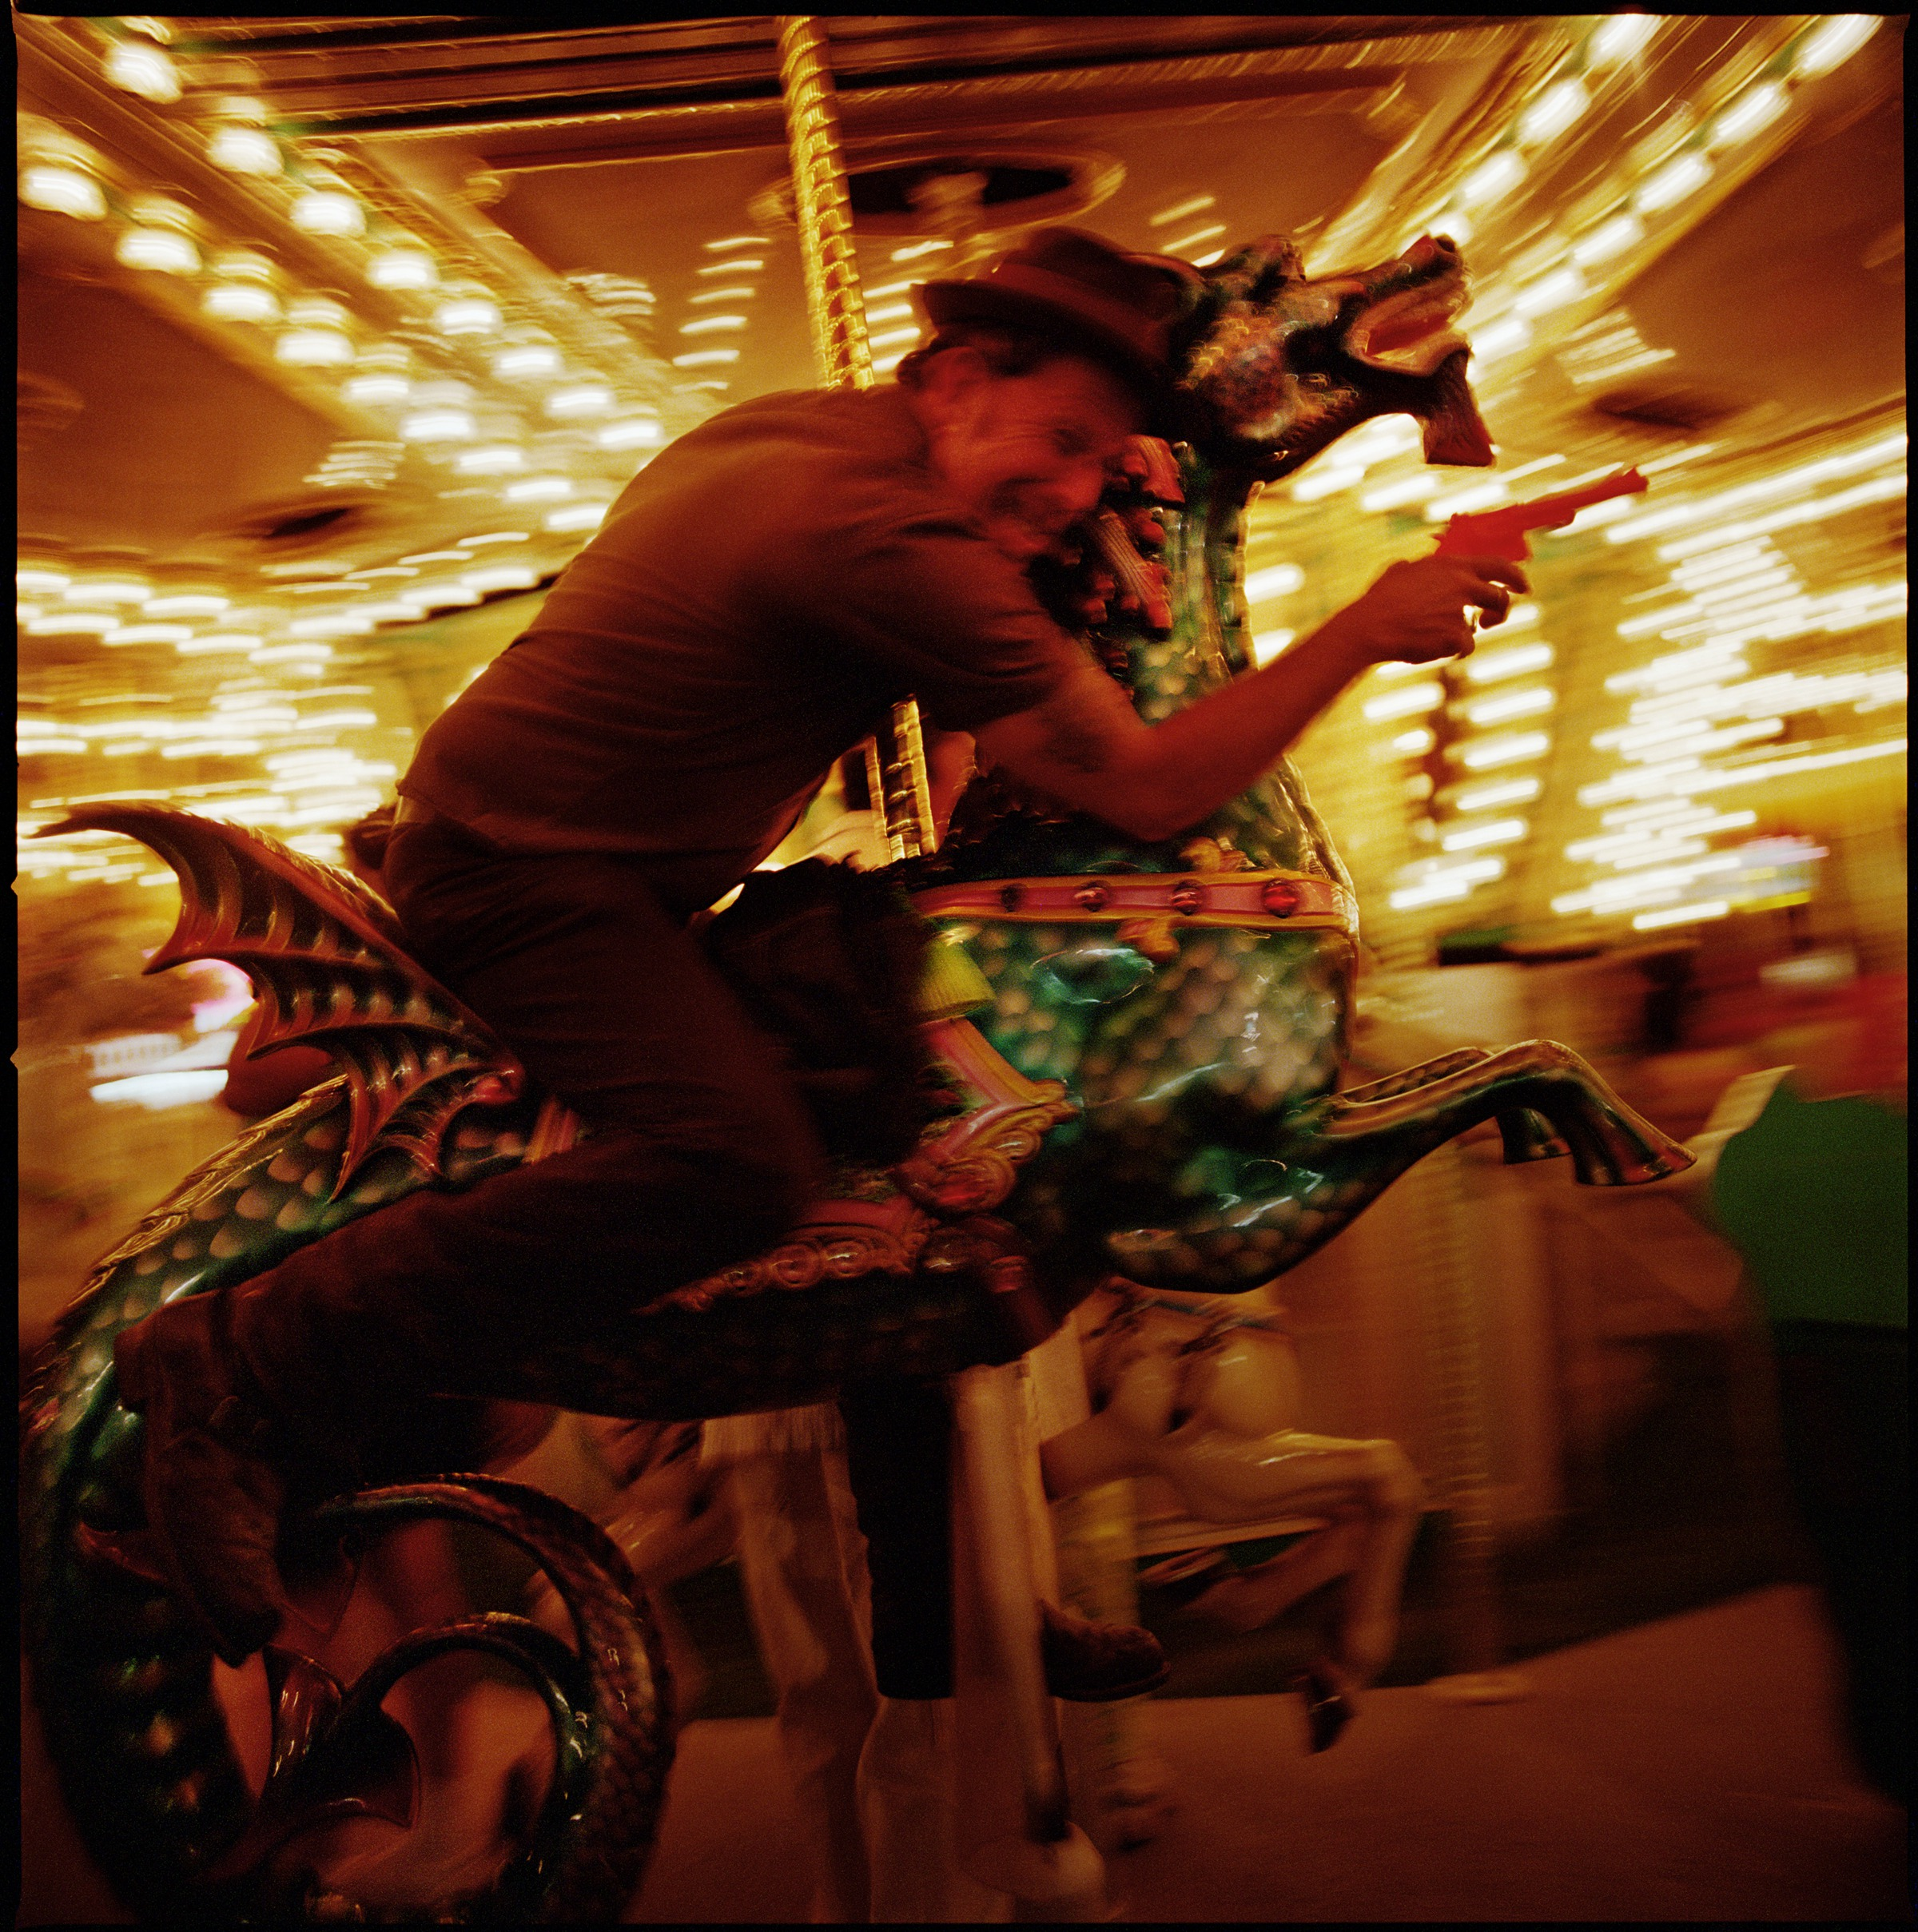 21254-1380580643-Danny Clinch Tom Waits Hi Res-p185og1j90c8f1skc25r16aqeif